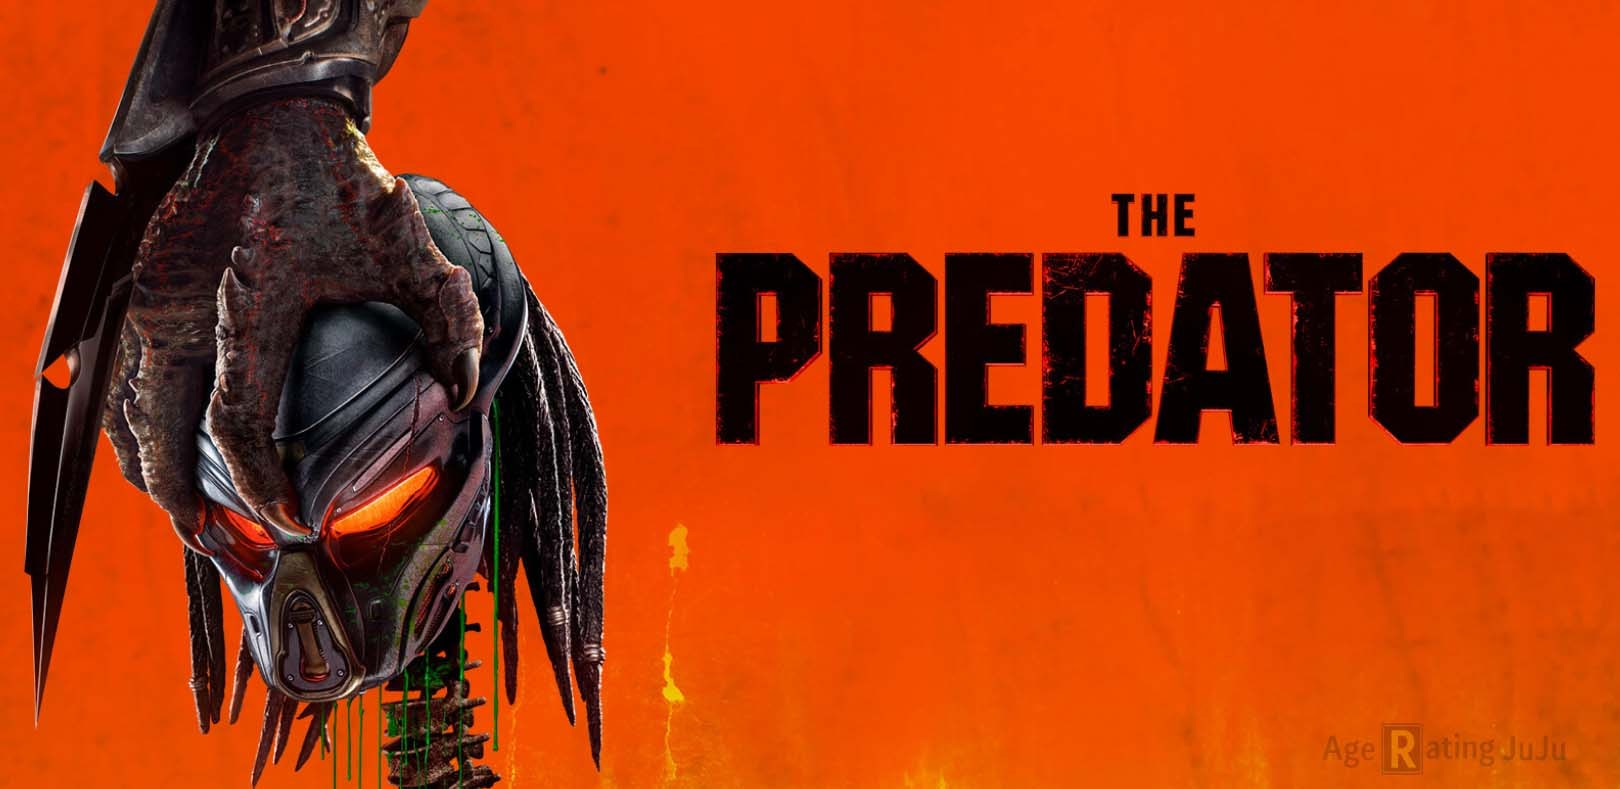 The-Predator-2018-Movie-Poster-Images-and-Wallpapers.jpg